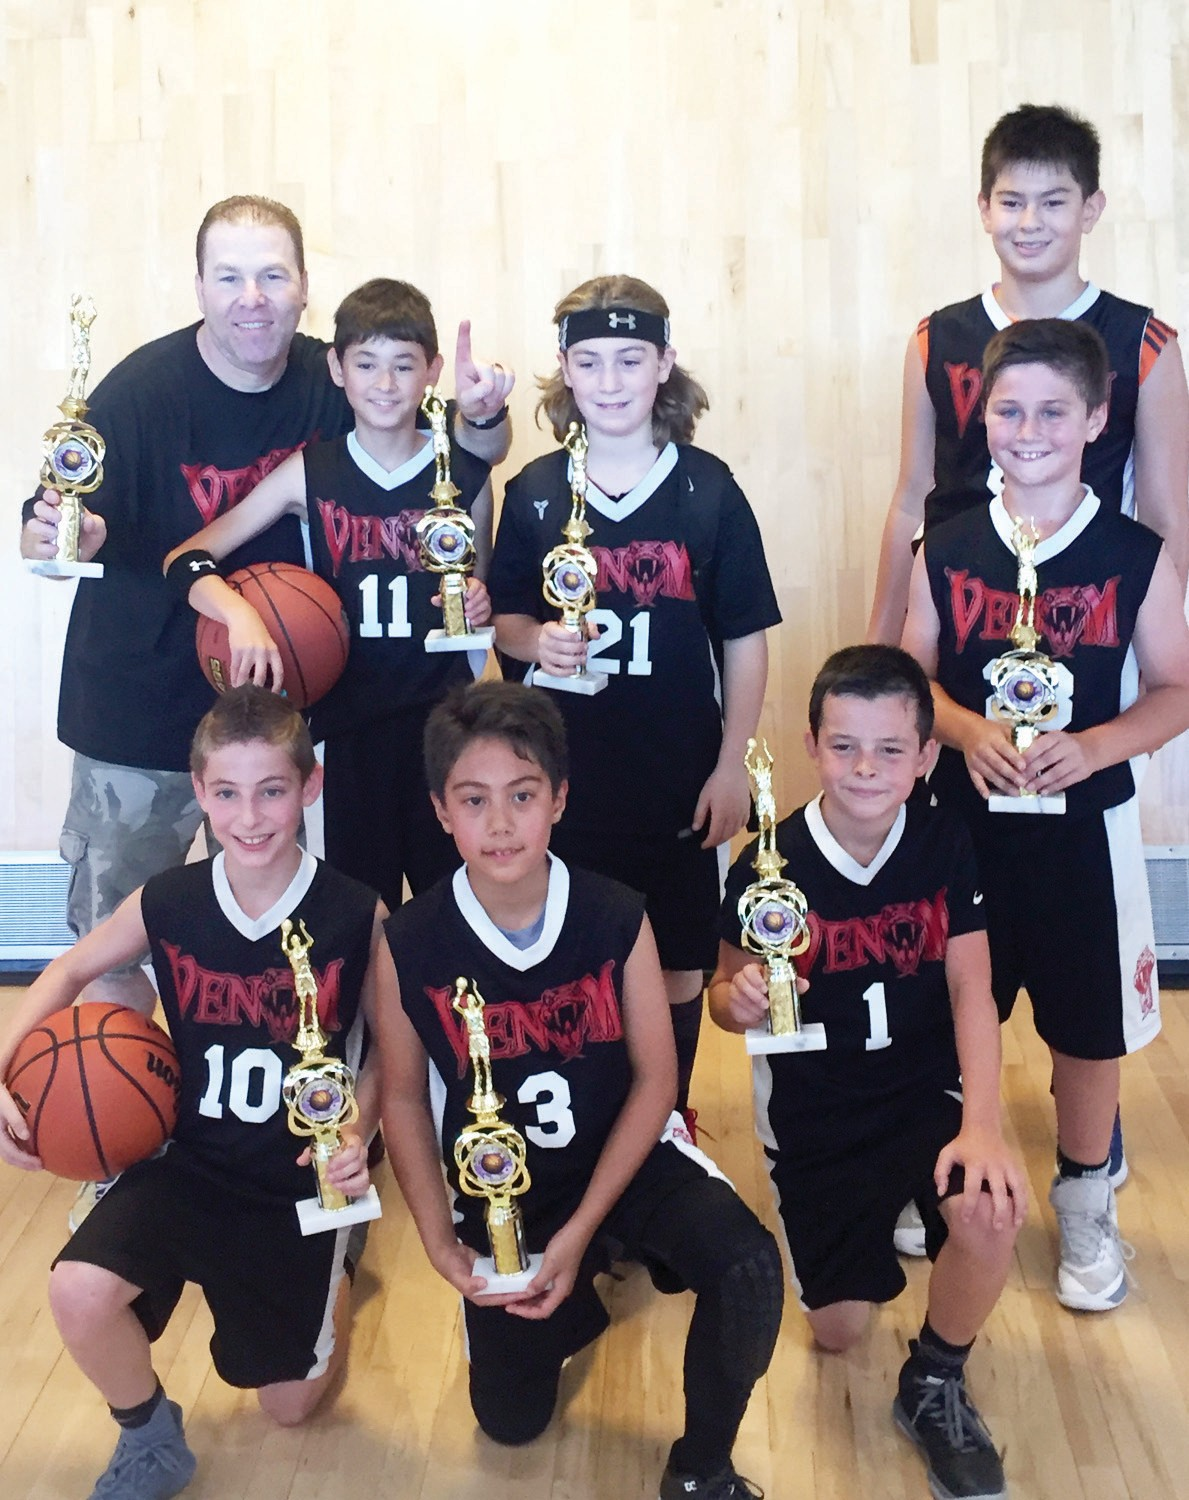 HAPPY HOOPSTERS—Team Venom, comprising players from Calabasas, Westlake Village and Agoura Hills, is the 2017 American Roundball Corporation Summer Basketball League champion in the U-10 division. The boys beat the SoCal Spartans 48-20. Bottom row, from left: Dylan Goosen, Gavin Udell and Peter Iba. Top row: Coach Dave Goosen, Jordan Klein, Cole Paperno, Aiden Wier and Nick Phenix.